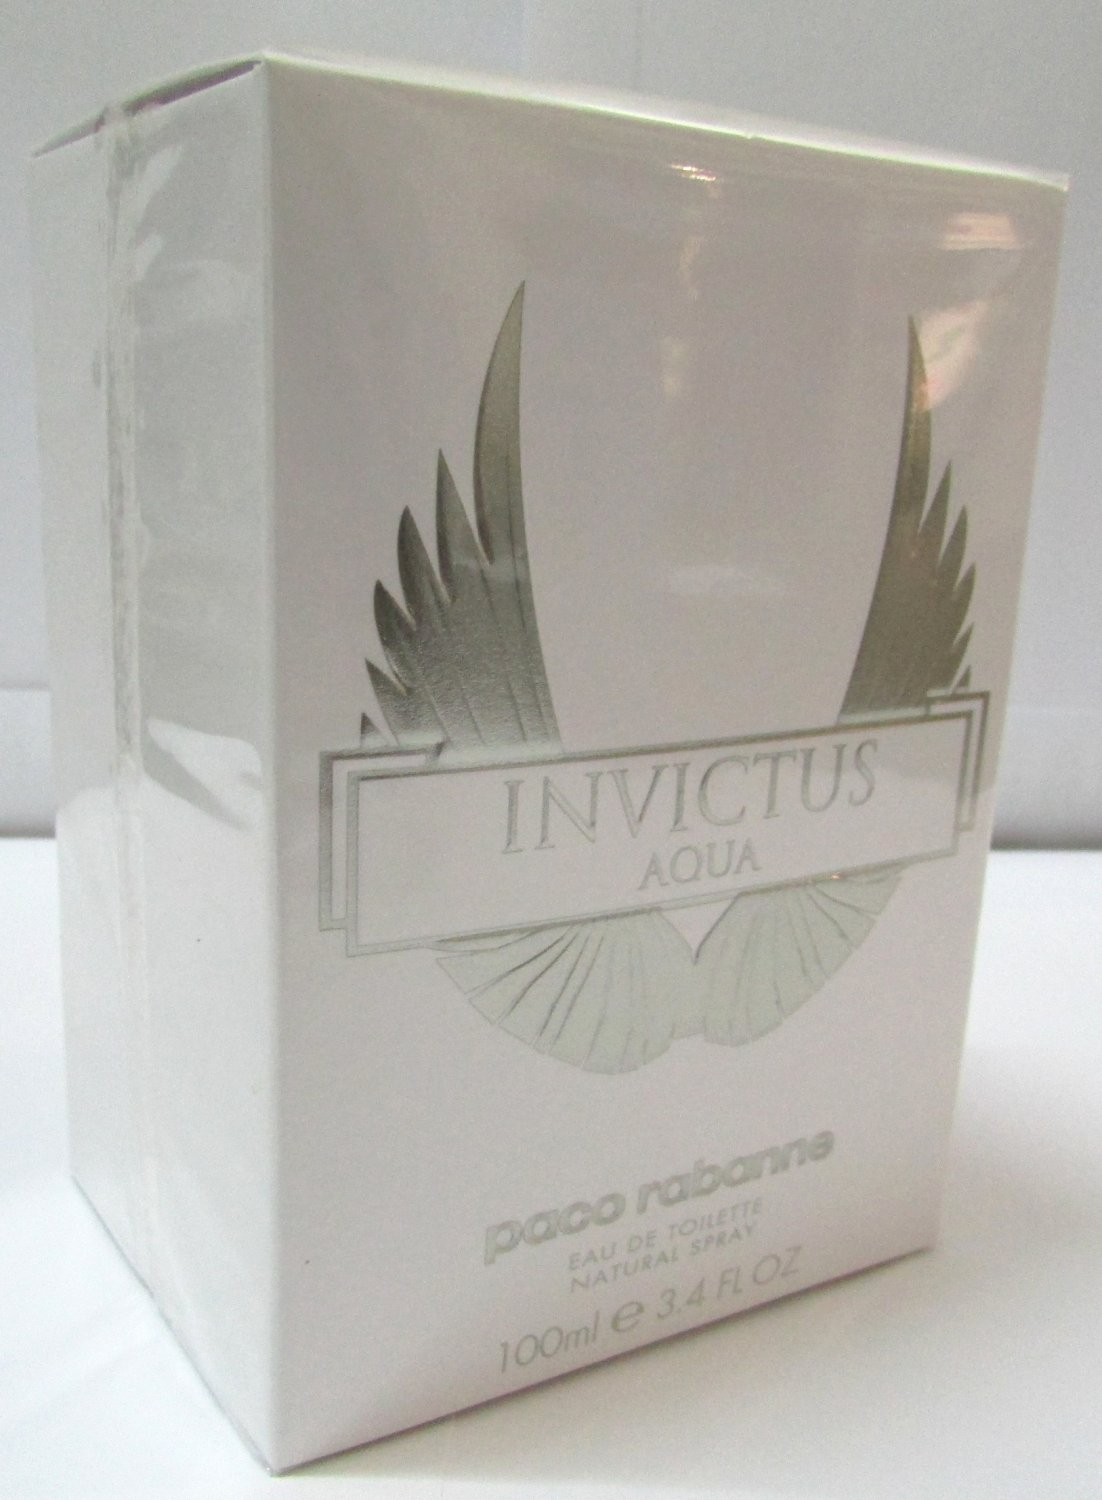 Paco Rabanne Invictus Aqua EDT Spray 100ml 3.4oz Men NEW SEALED & 100% Original